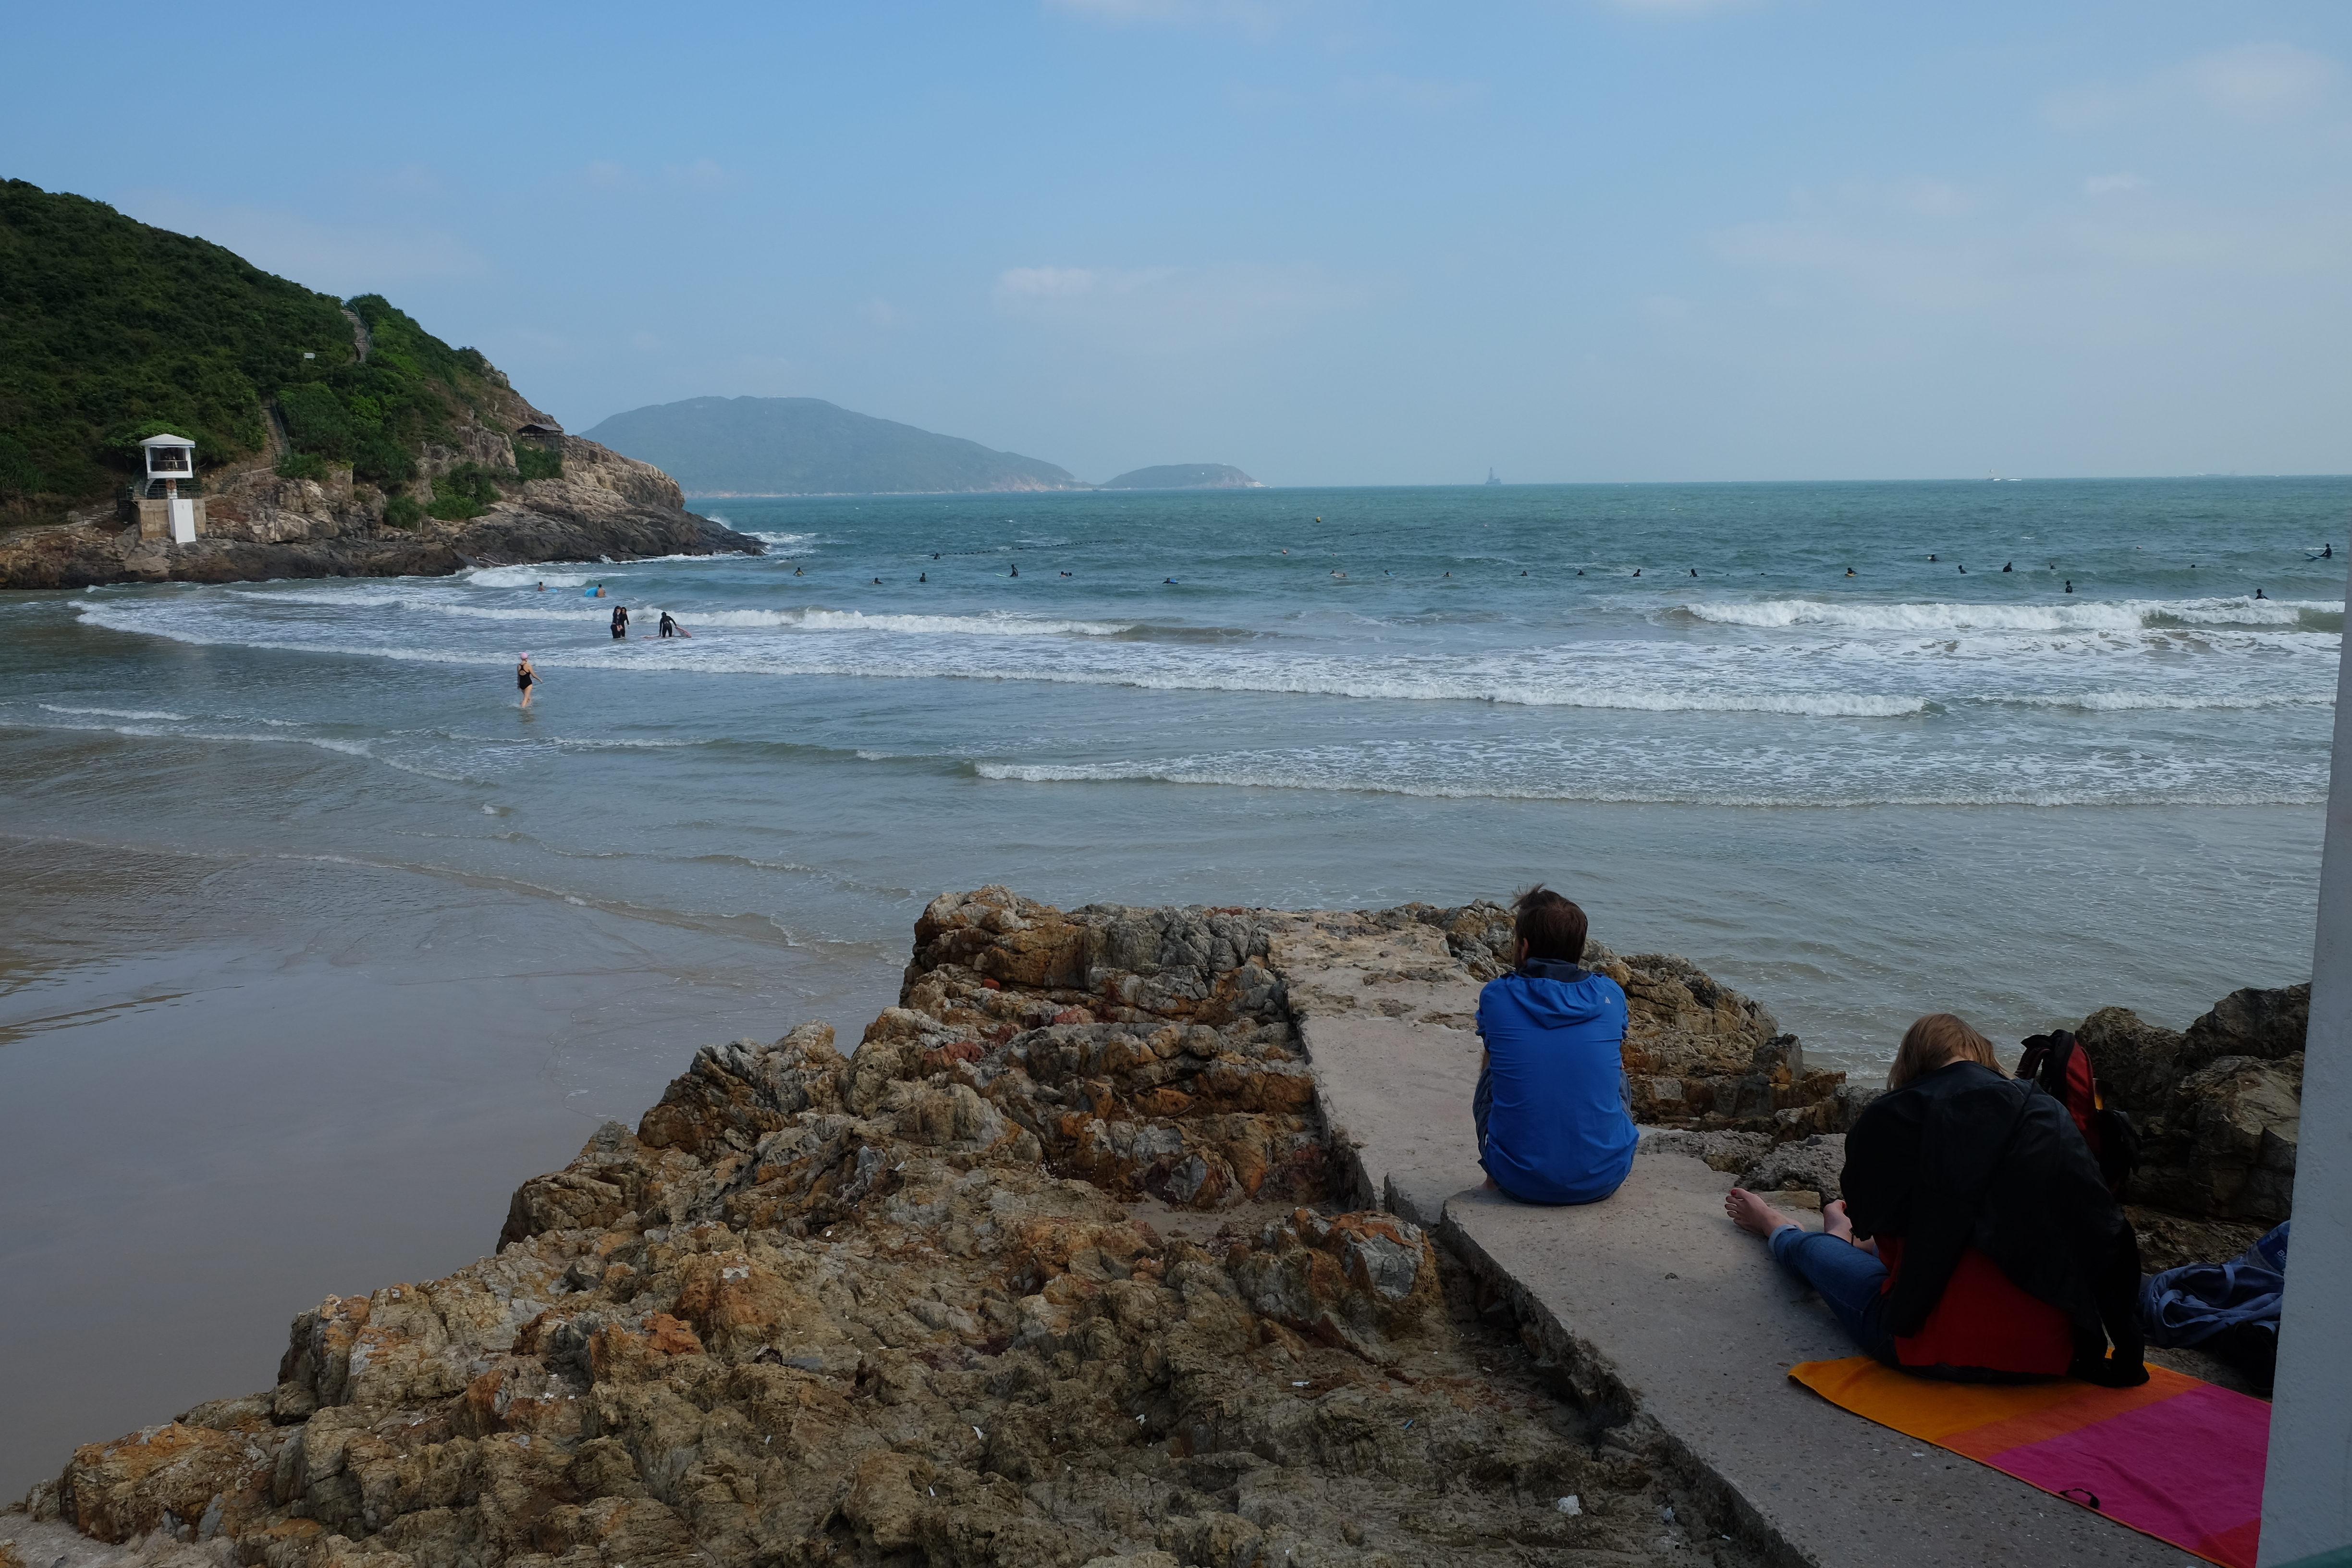 Watching the surfers at Big Wave Bay.